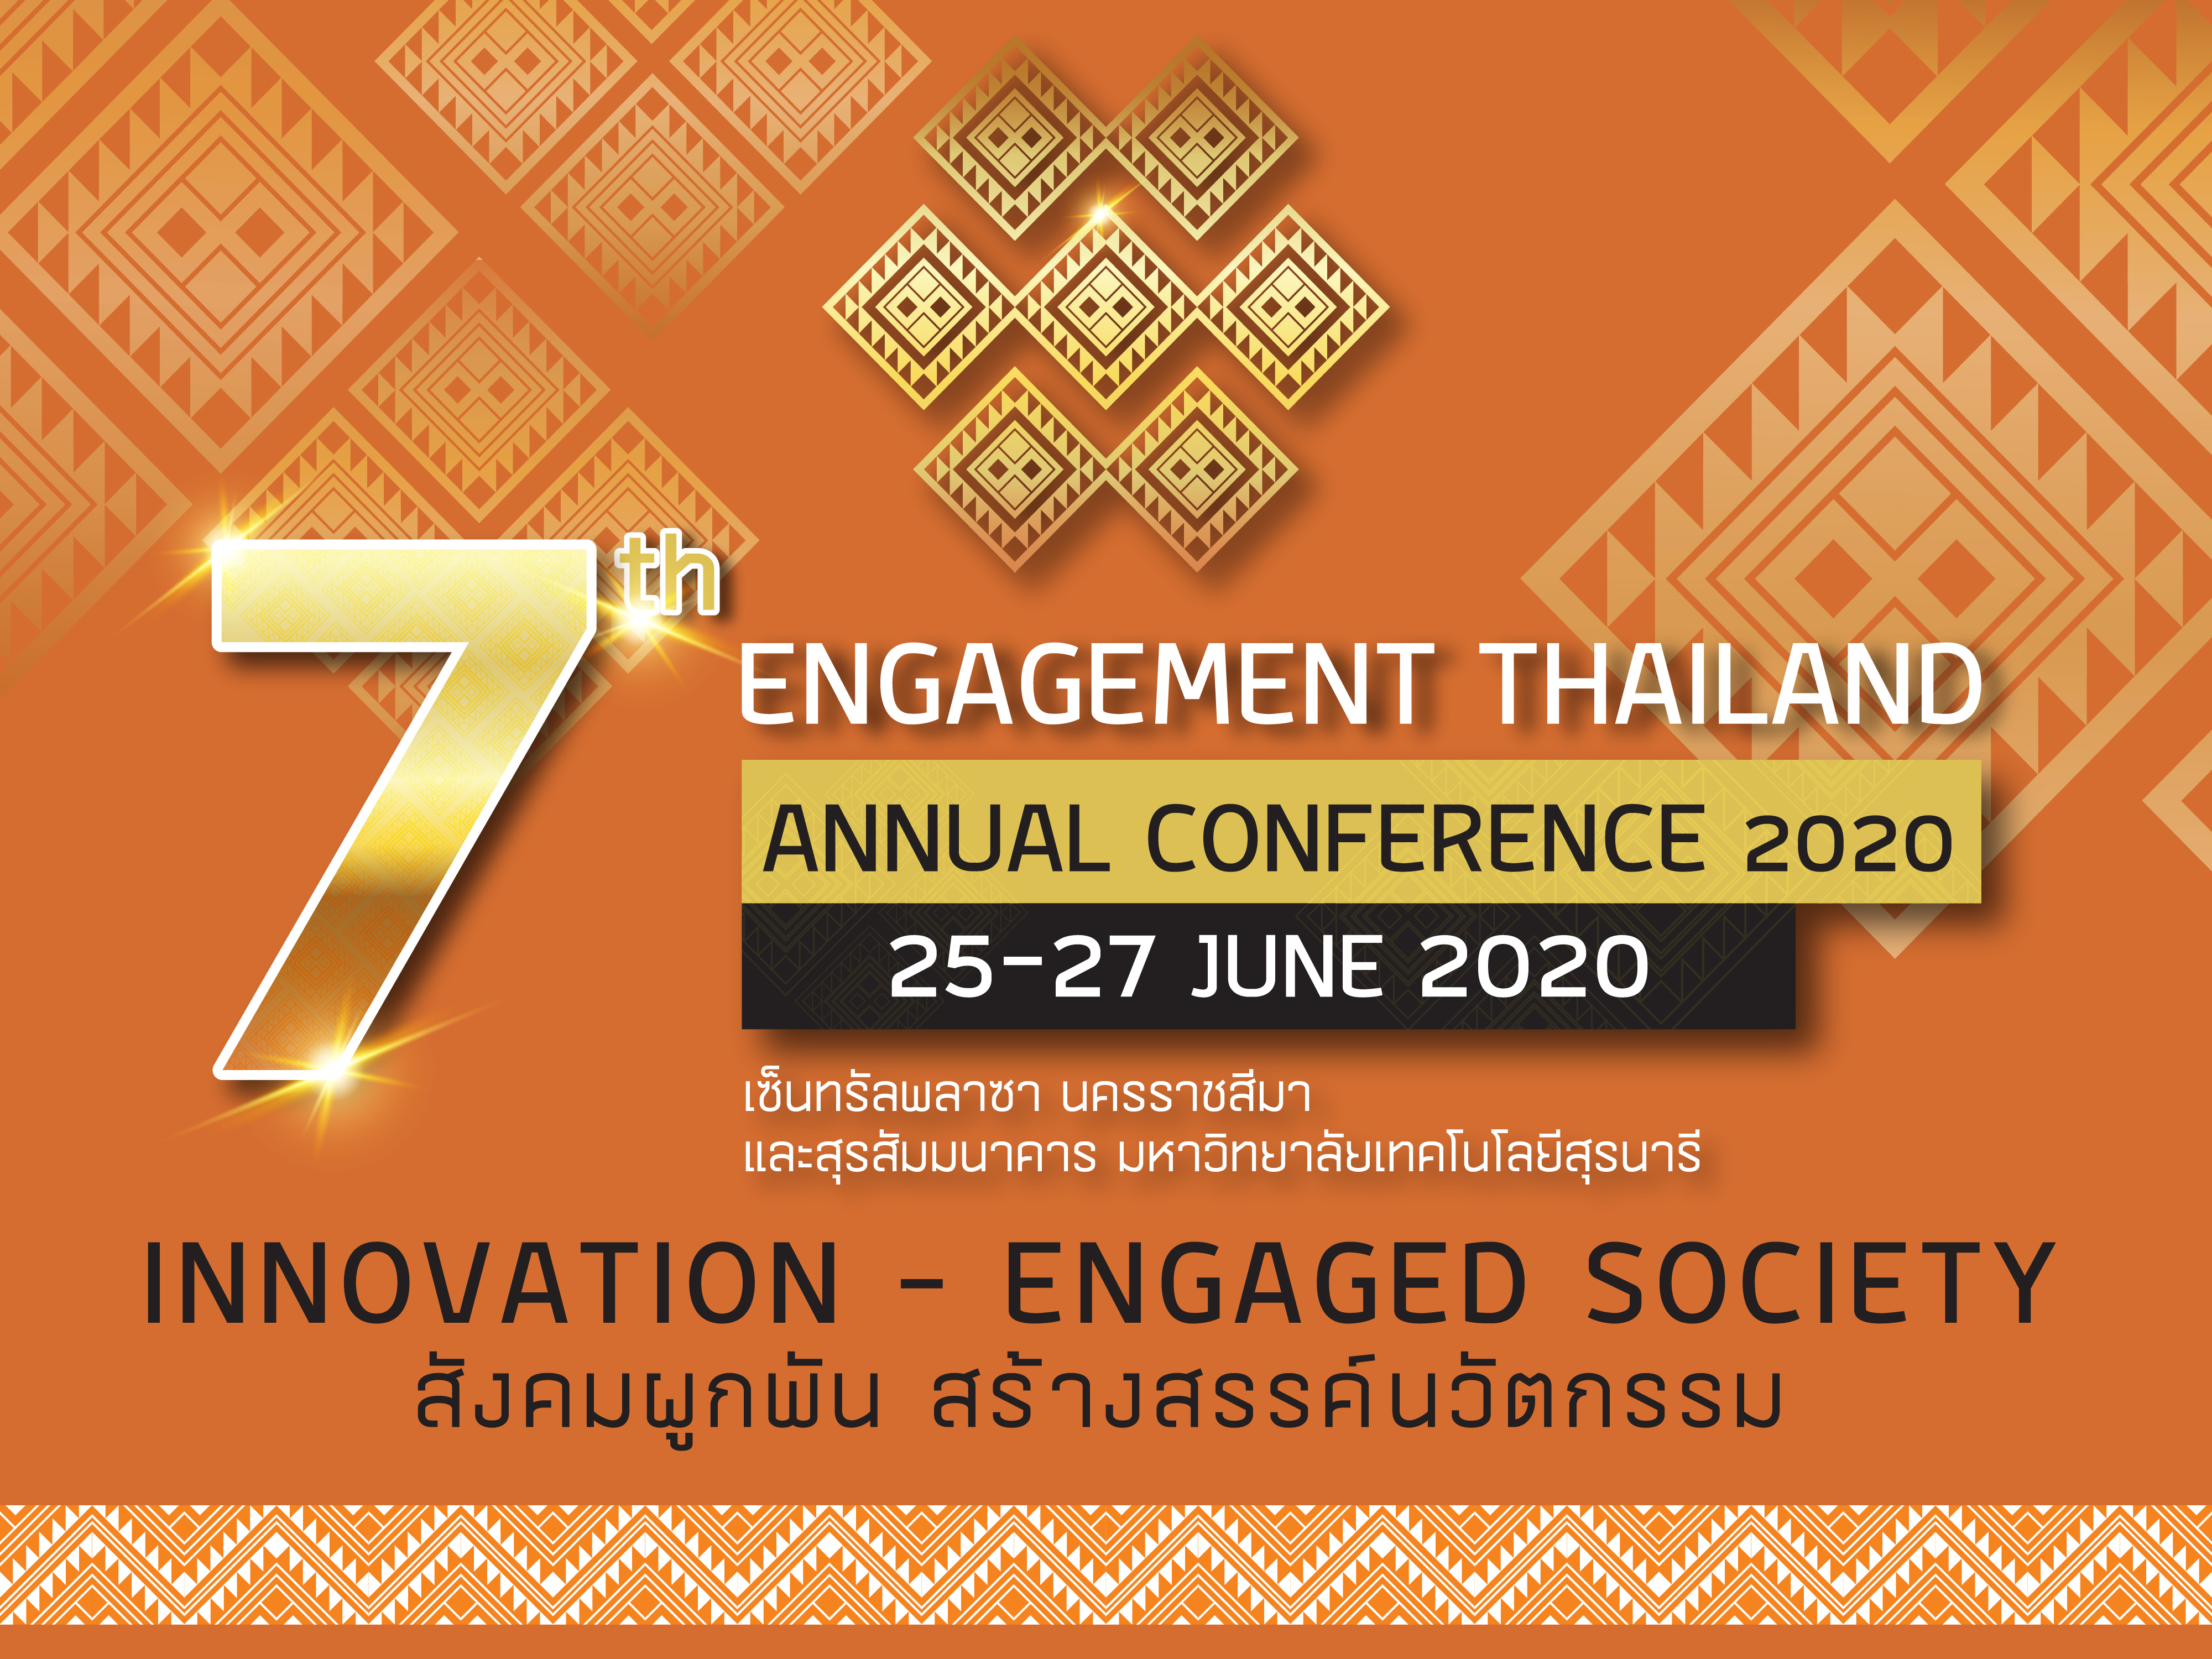 THE 7TH ENGAGEMENT THAILAND ANNUAL CONFERENCE